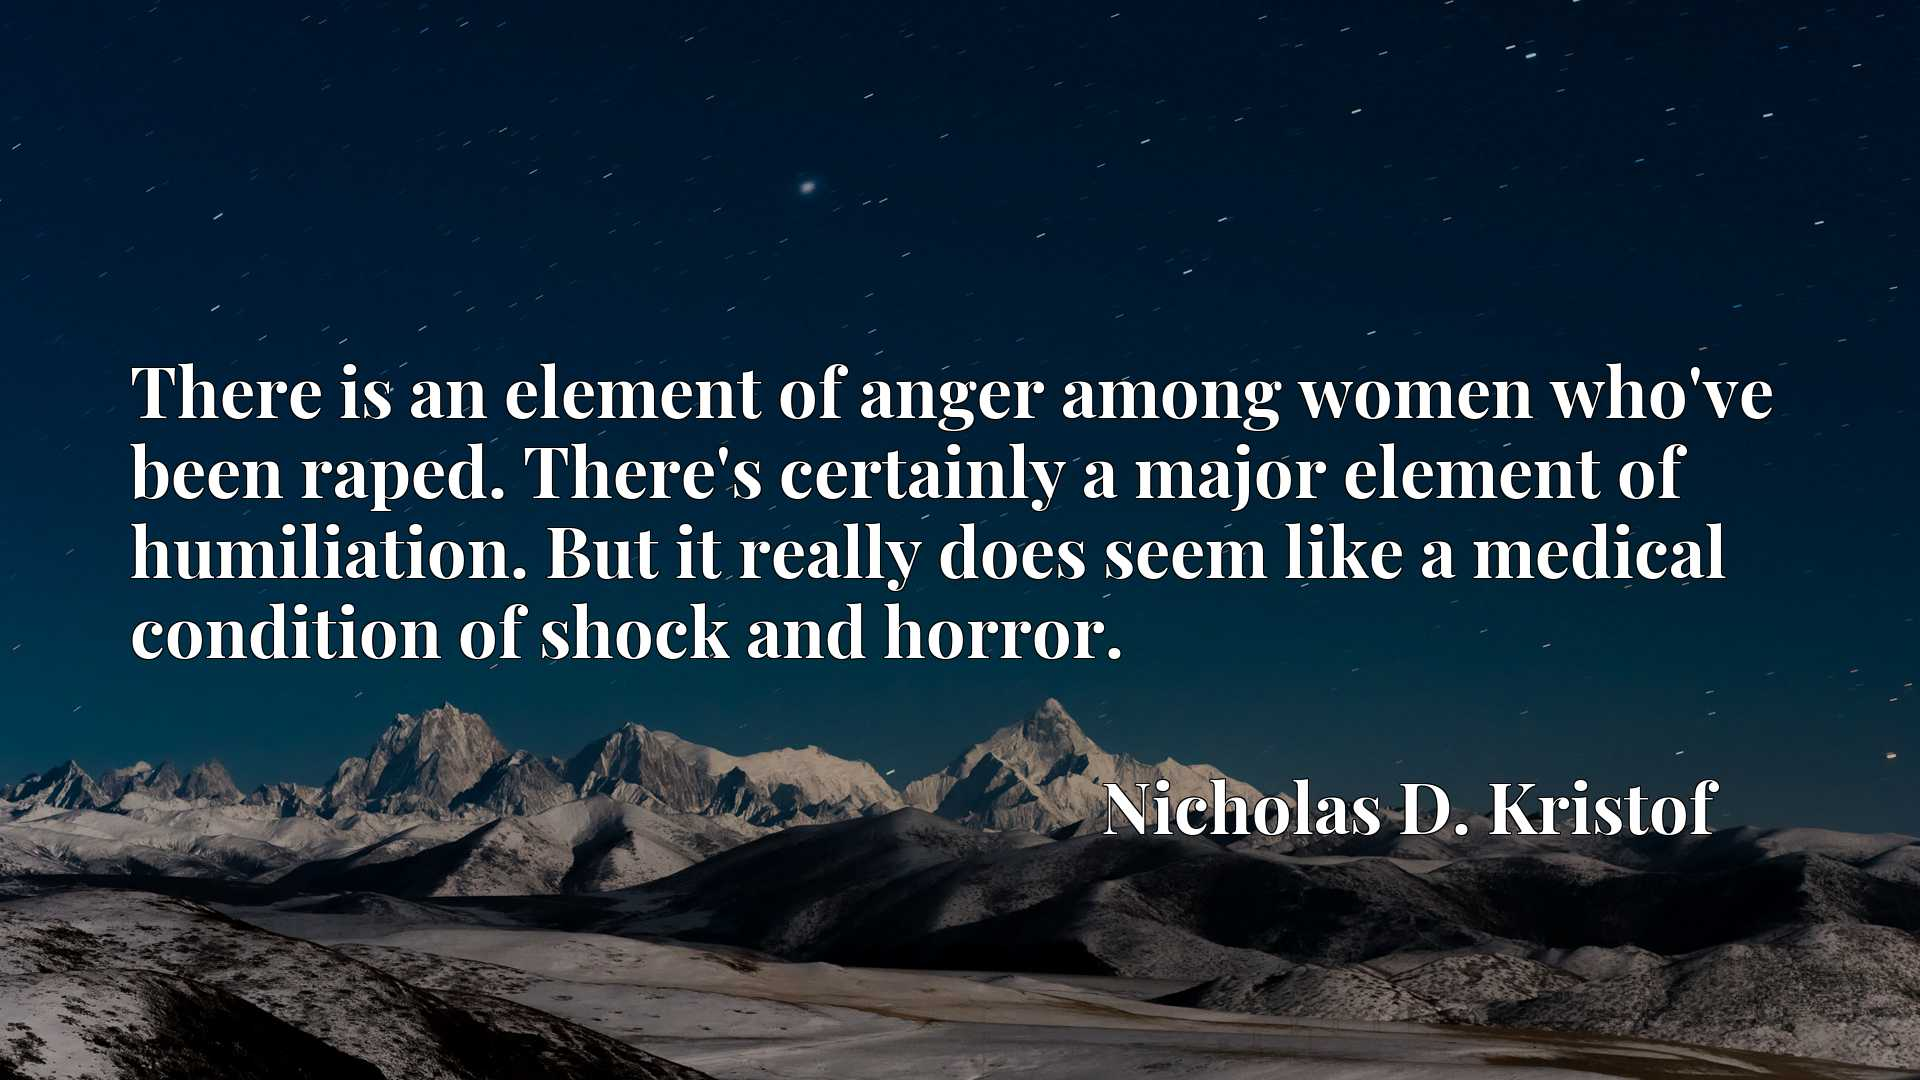 There is an element of anger among women who've been raped. There's certainly a major element of humiliation. But it really does seem like a medical condition of shock and horror.